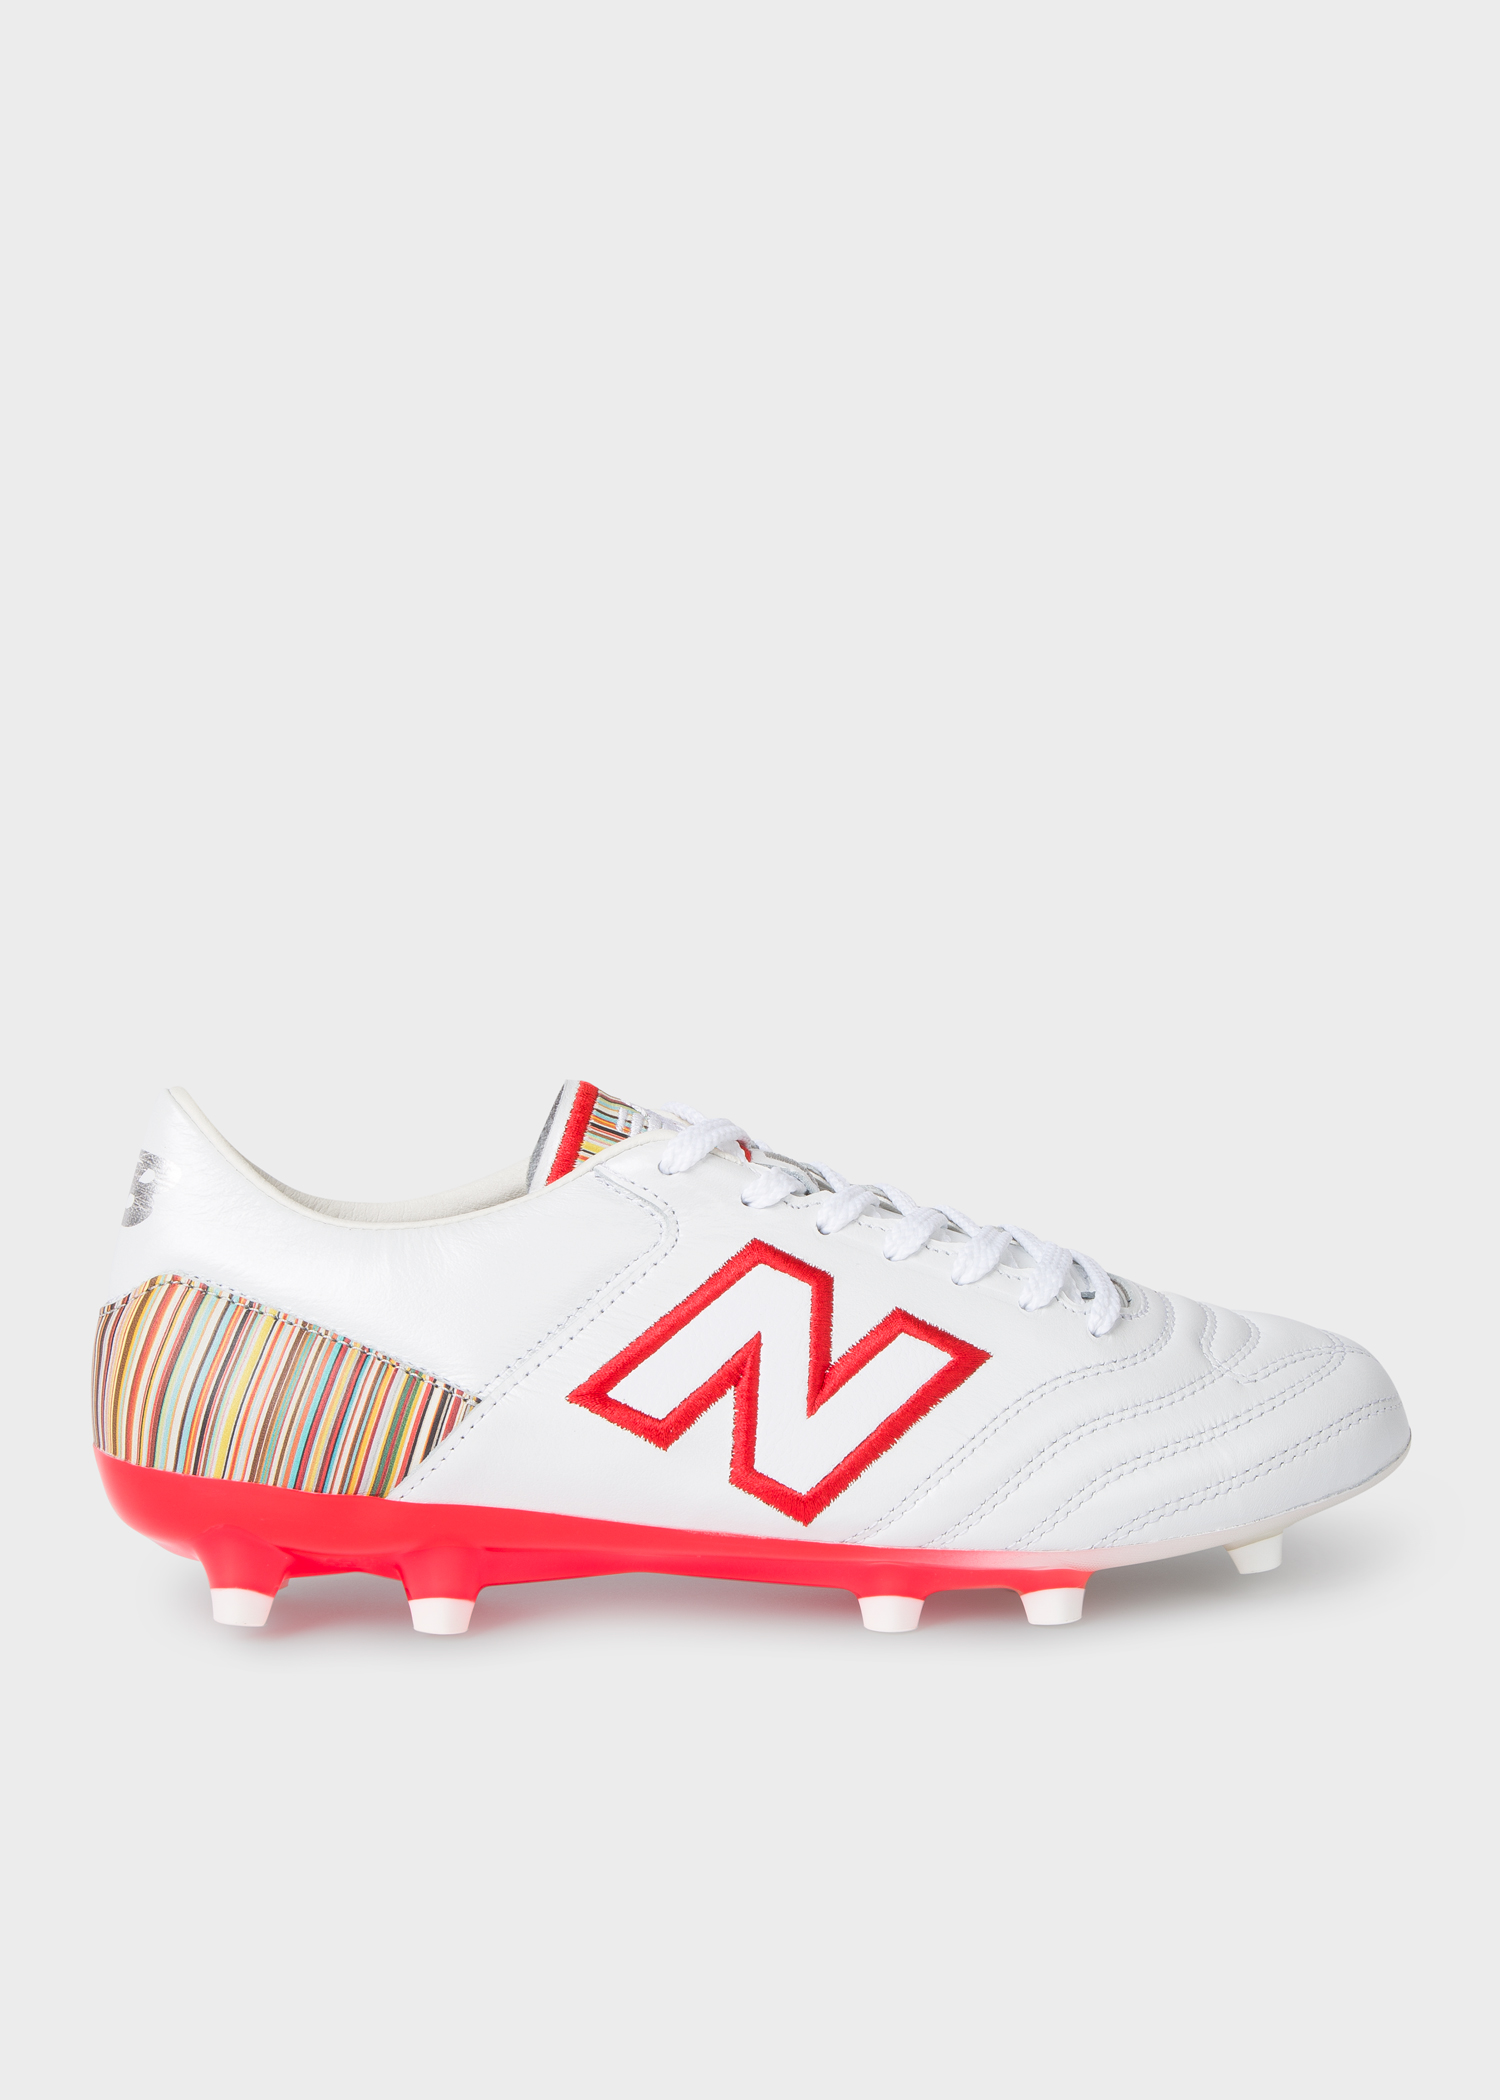 87d3df6681e New Balance + Paul Smith - Men's White MiUK-One Football Boots ...